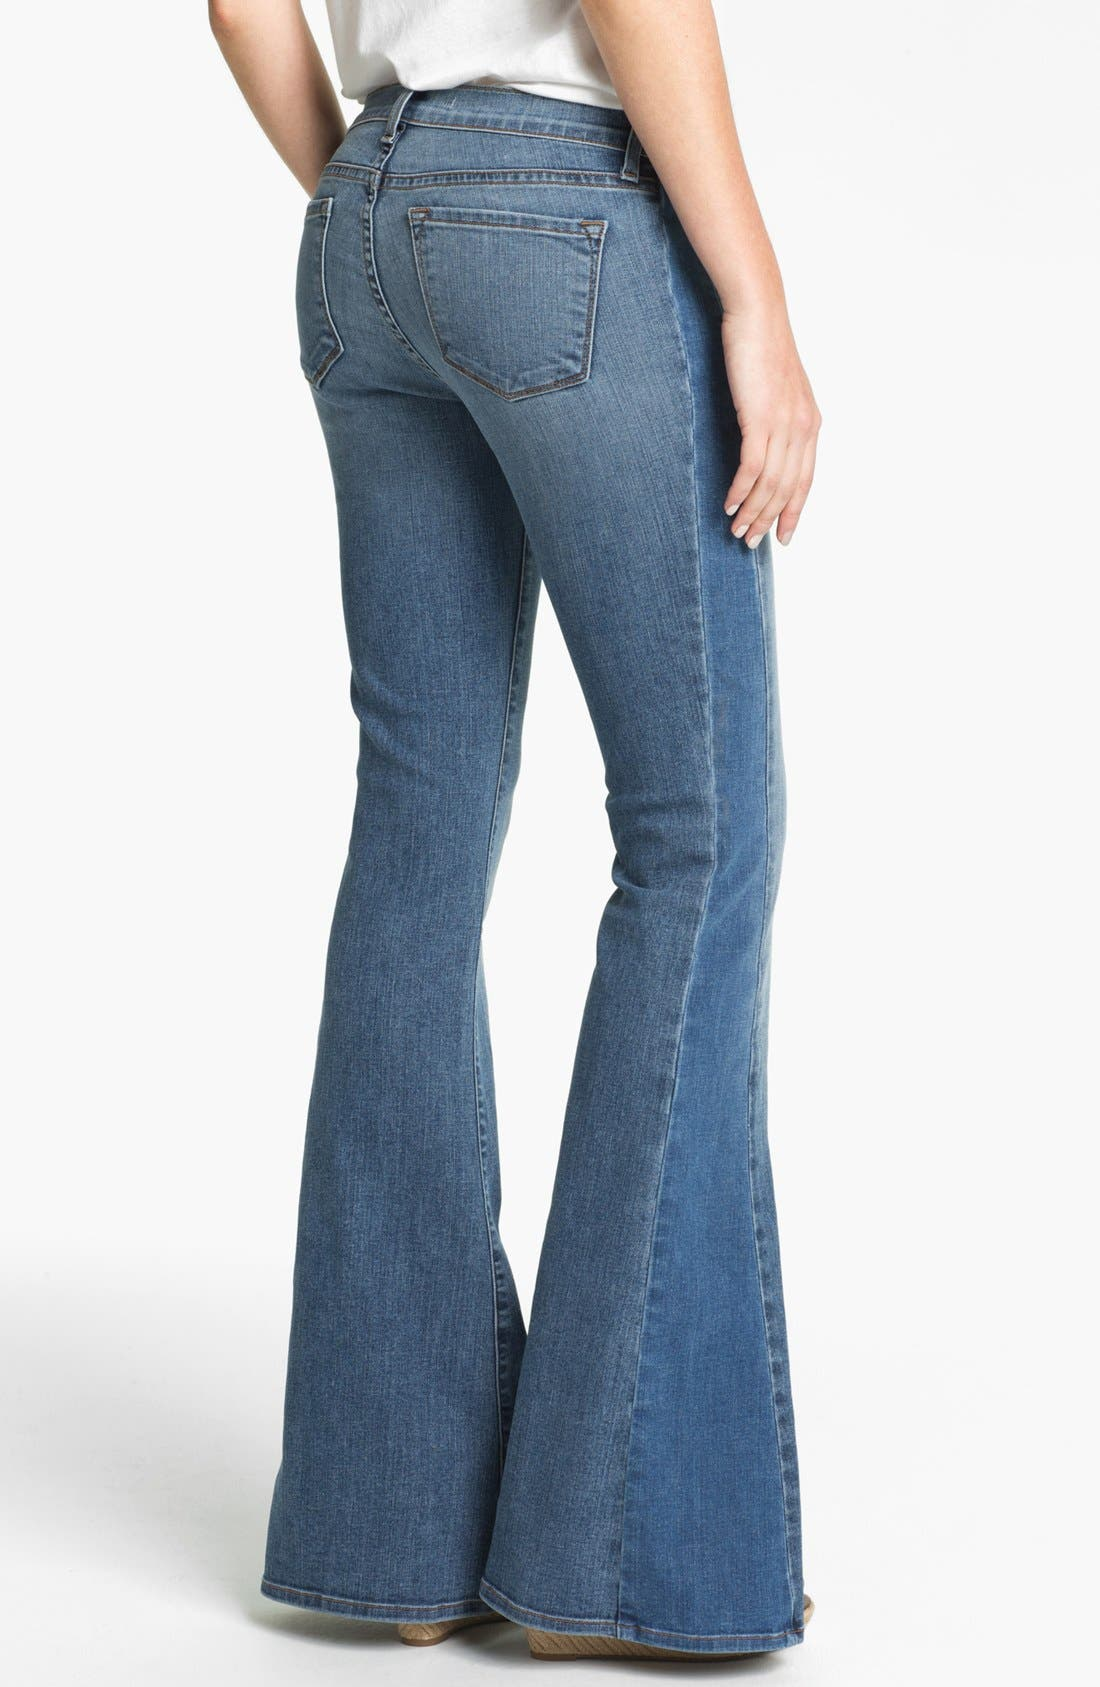 Alternate Image 2  - J Brand 'Chrissy' Flare Leg Jeans (Bliss)